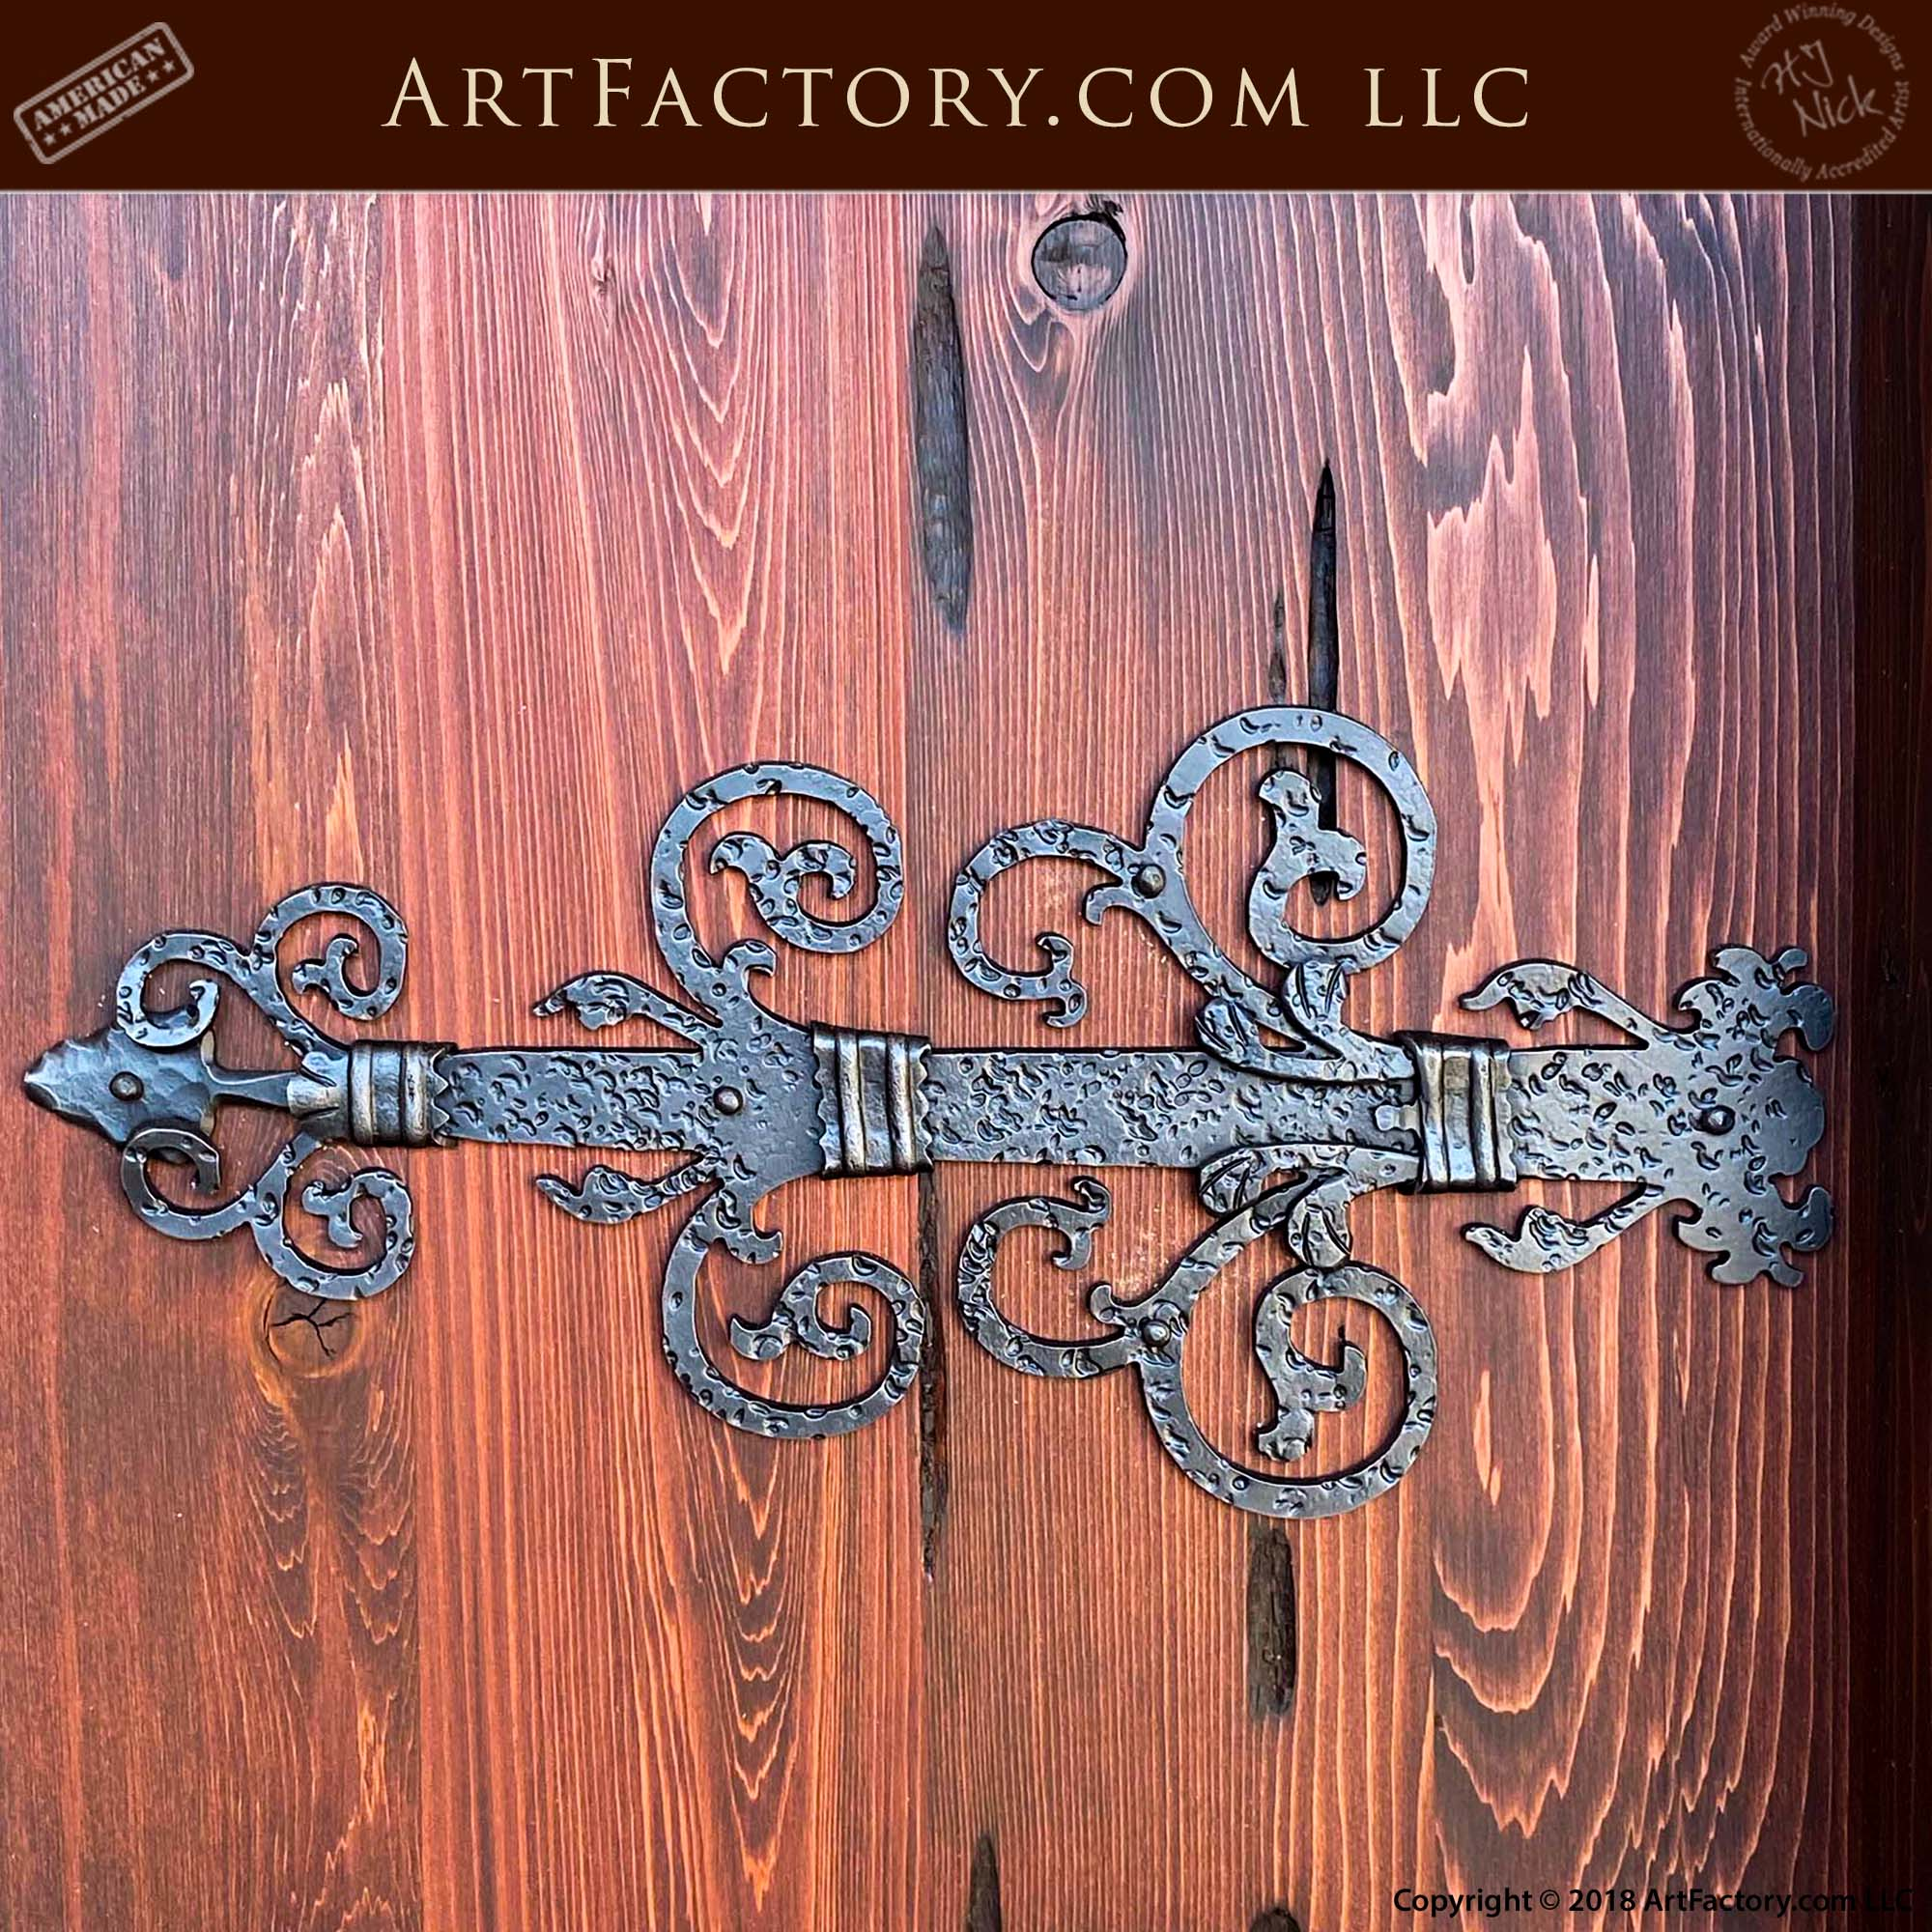 Decorative Hand Forged Iron Straps